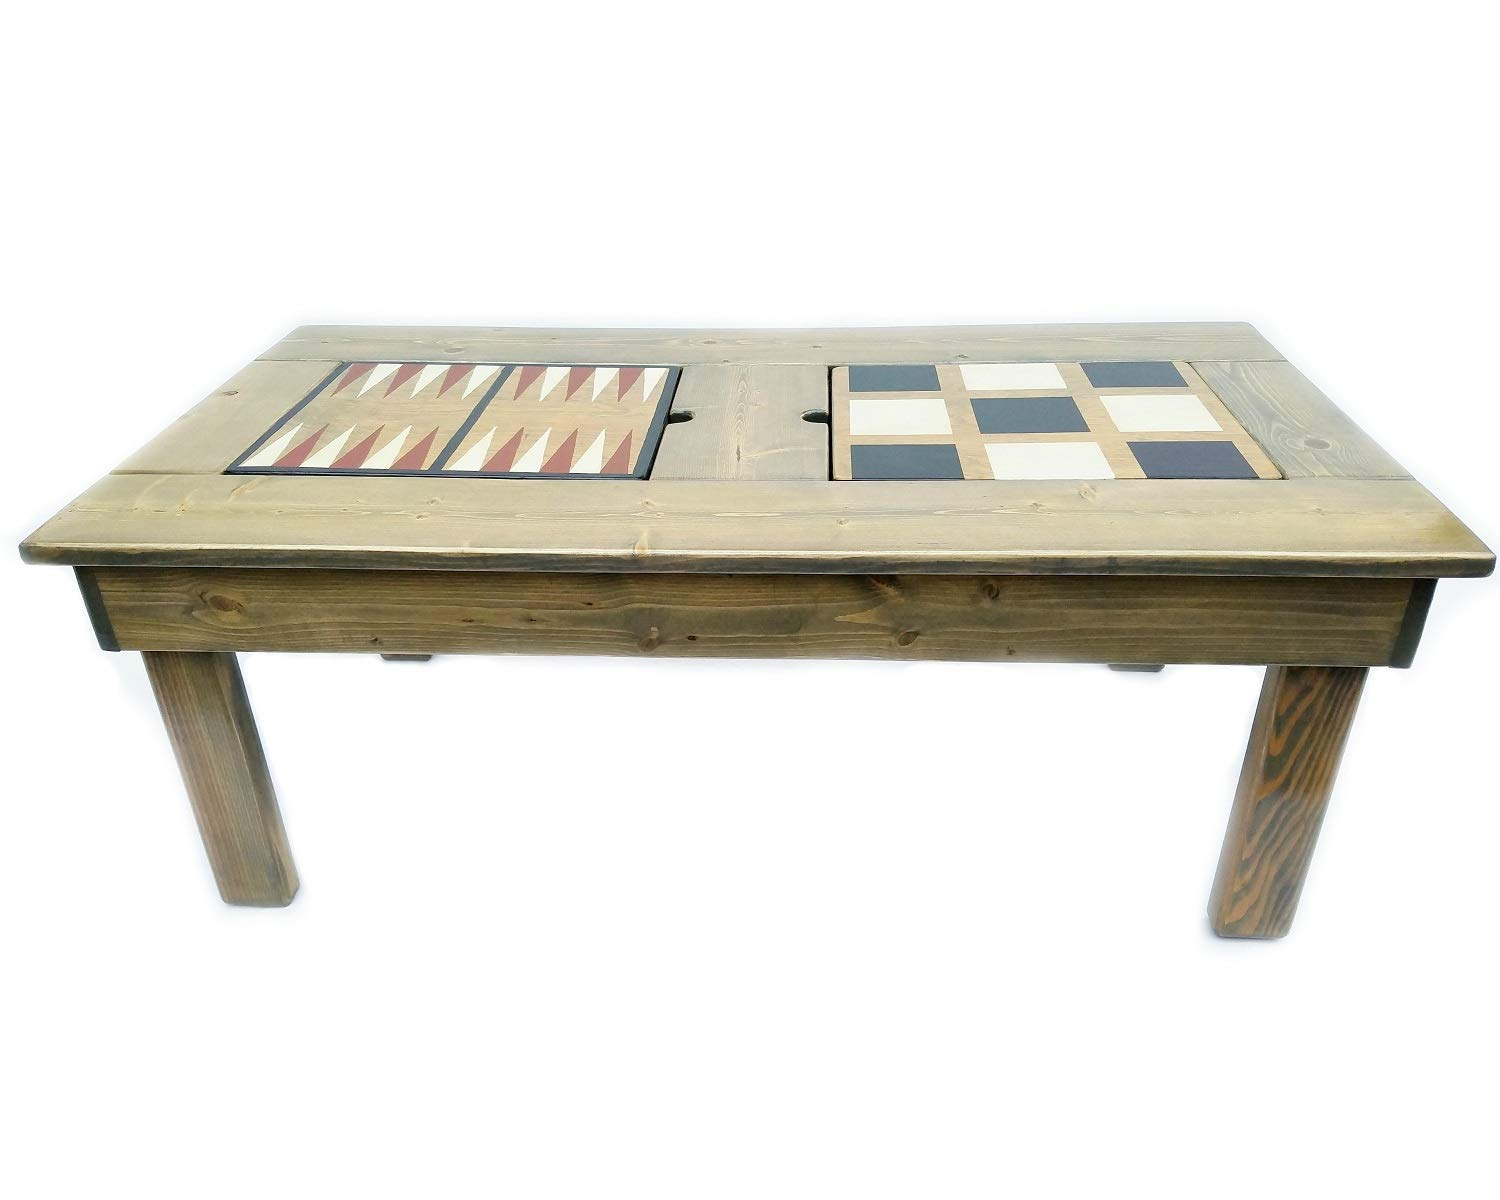 SALENEW very popular Coffee Table Wood Game Features 4 Popular standard Games